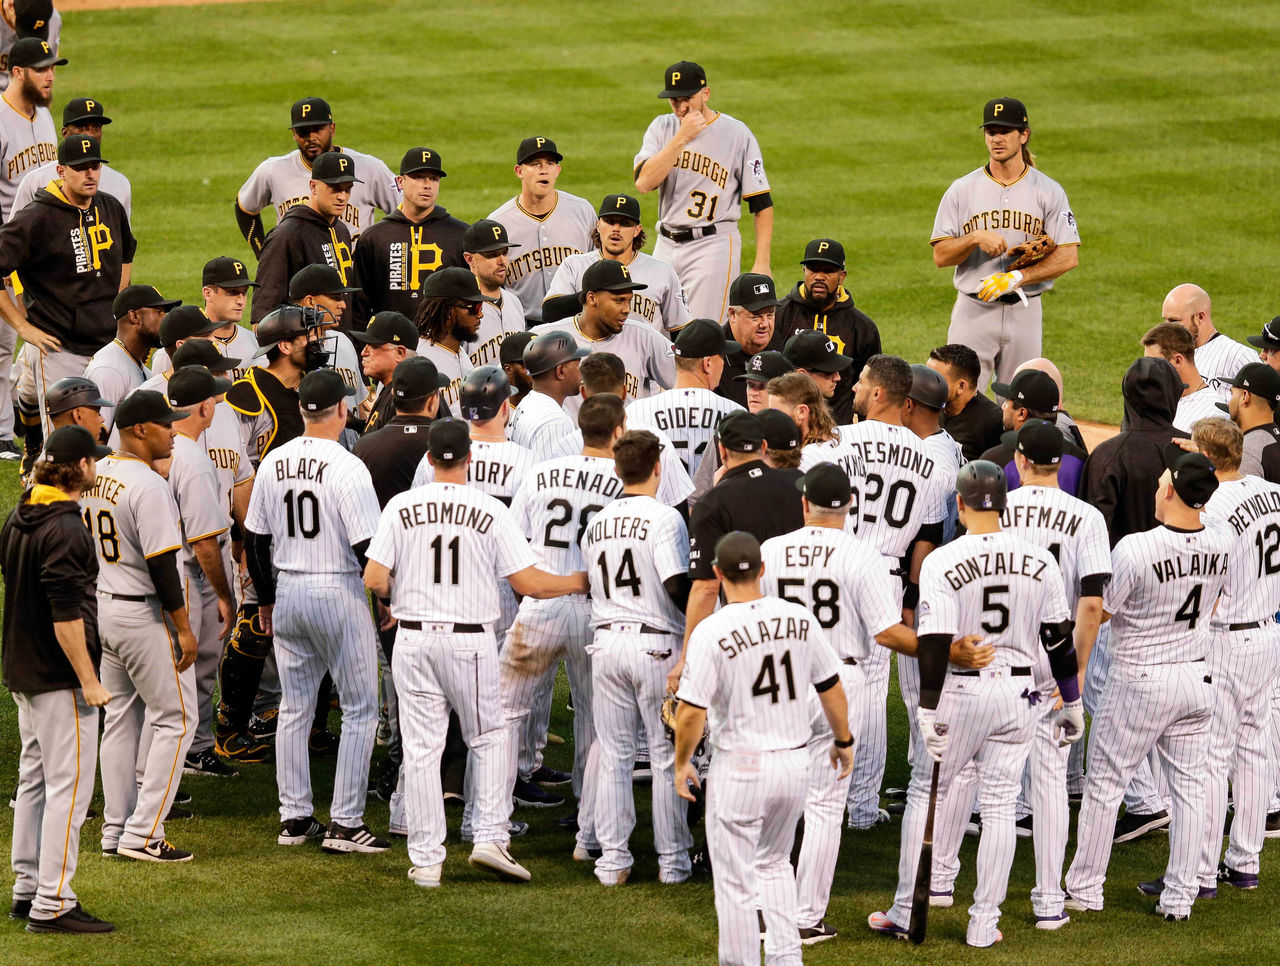 Cropped_2017-07-23t023450z_755219477_nocid_rtrmadp_3_mlb-pittsburgh-pirates-at-colorado-rockies